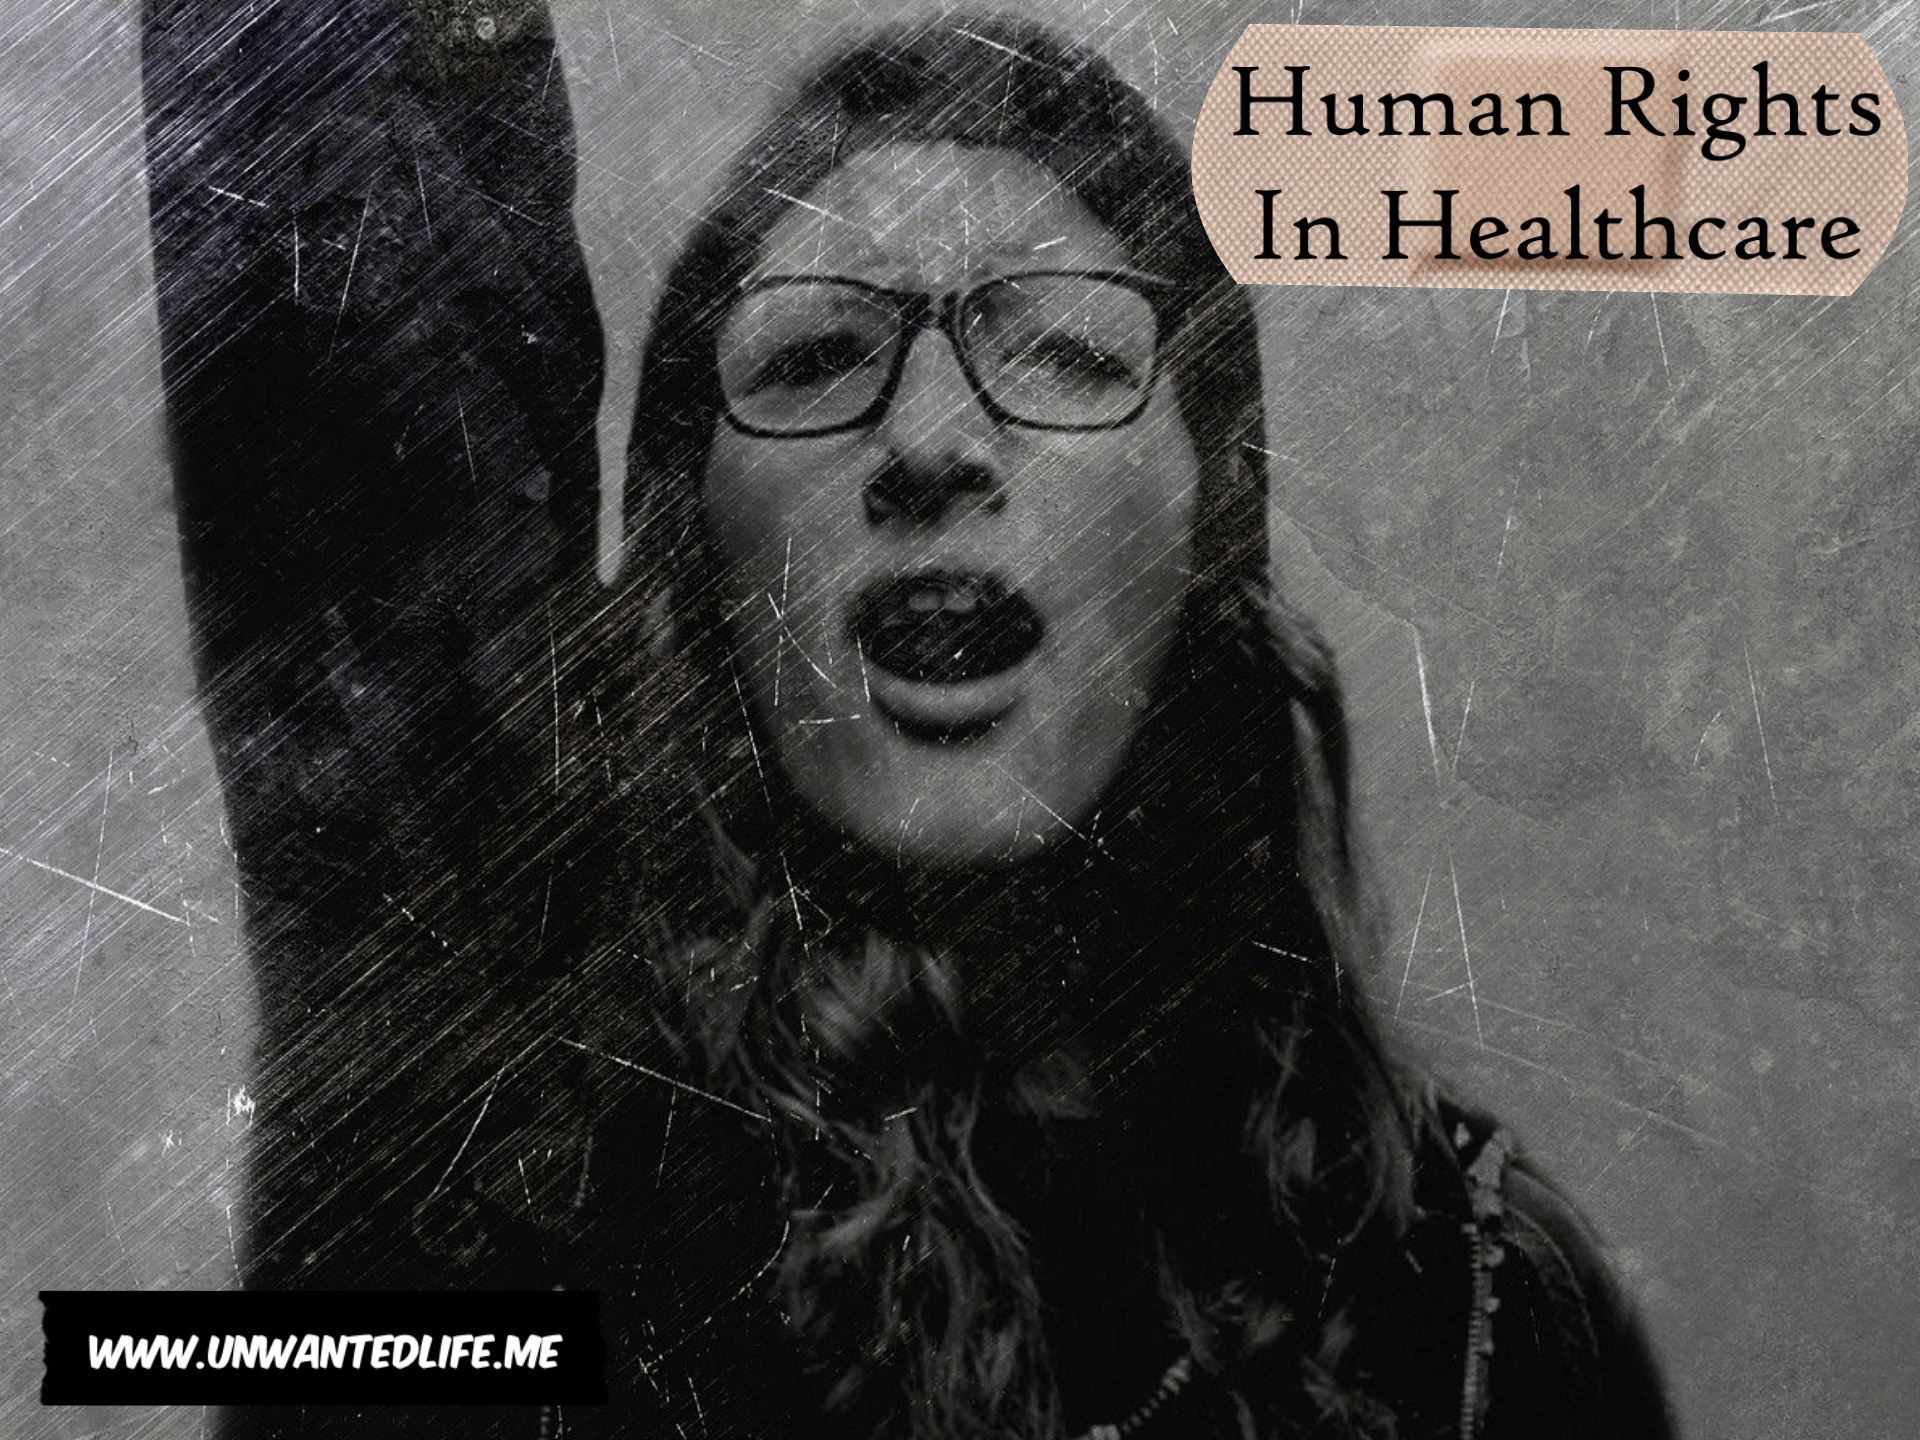 Human Rights In Healthcare | Health and Wellness | Unwanted Life